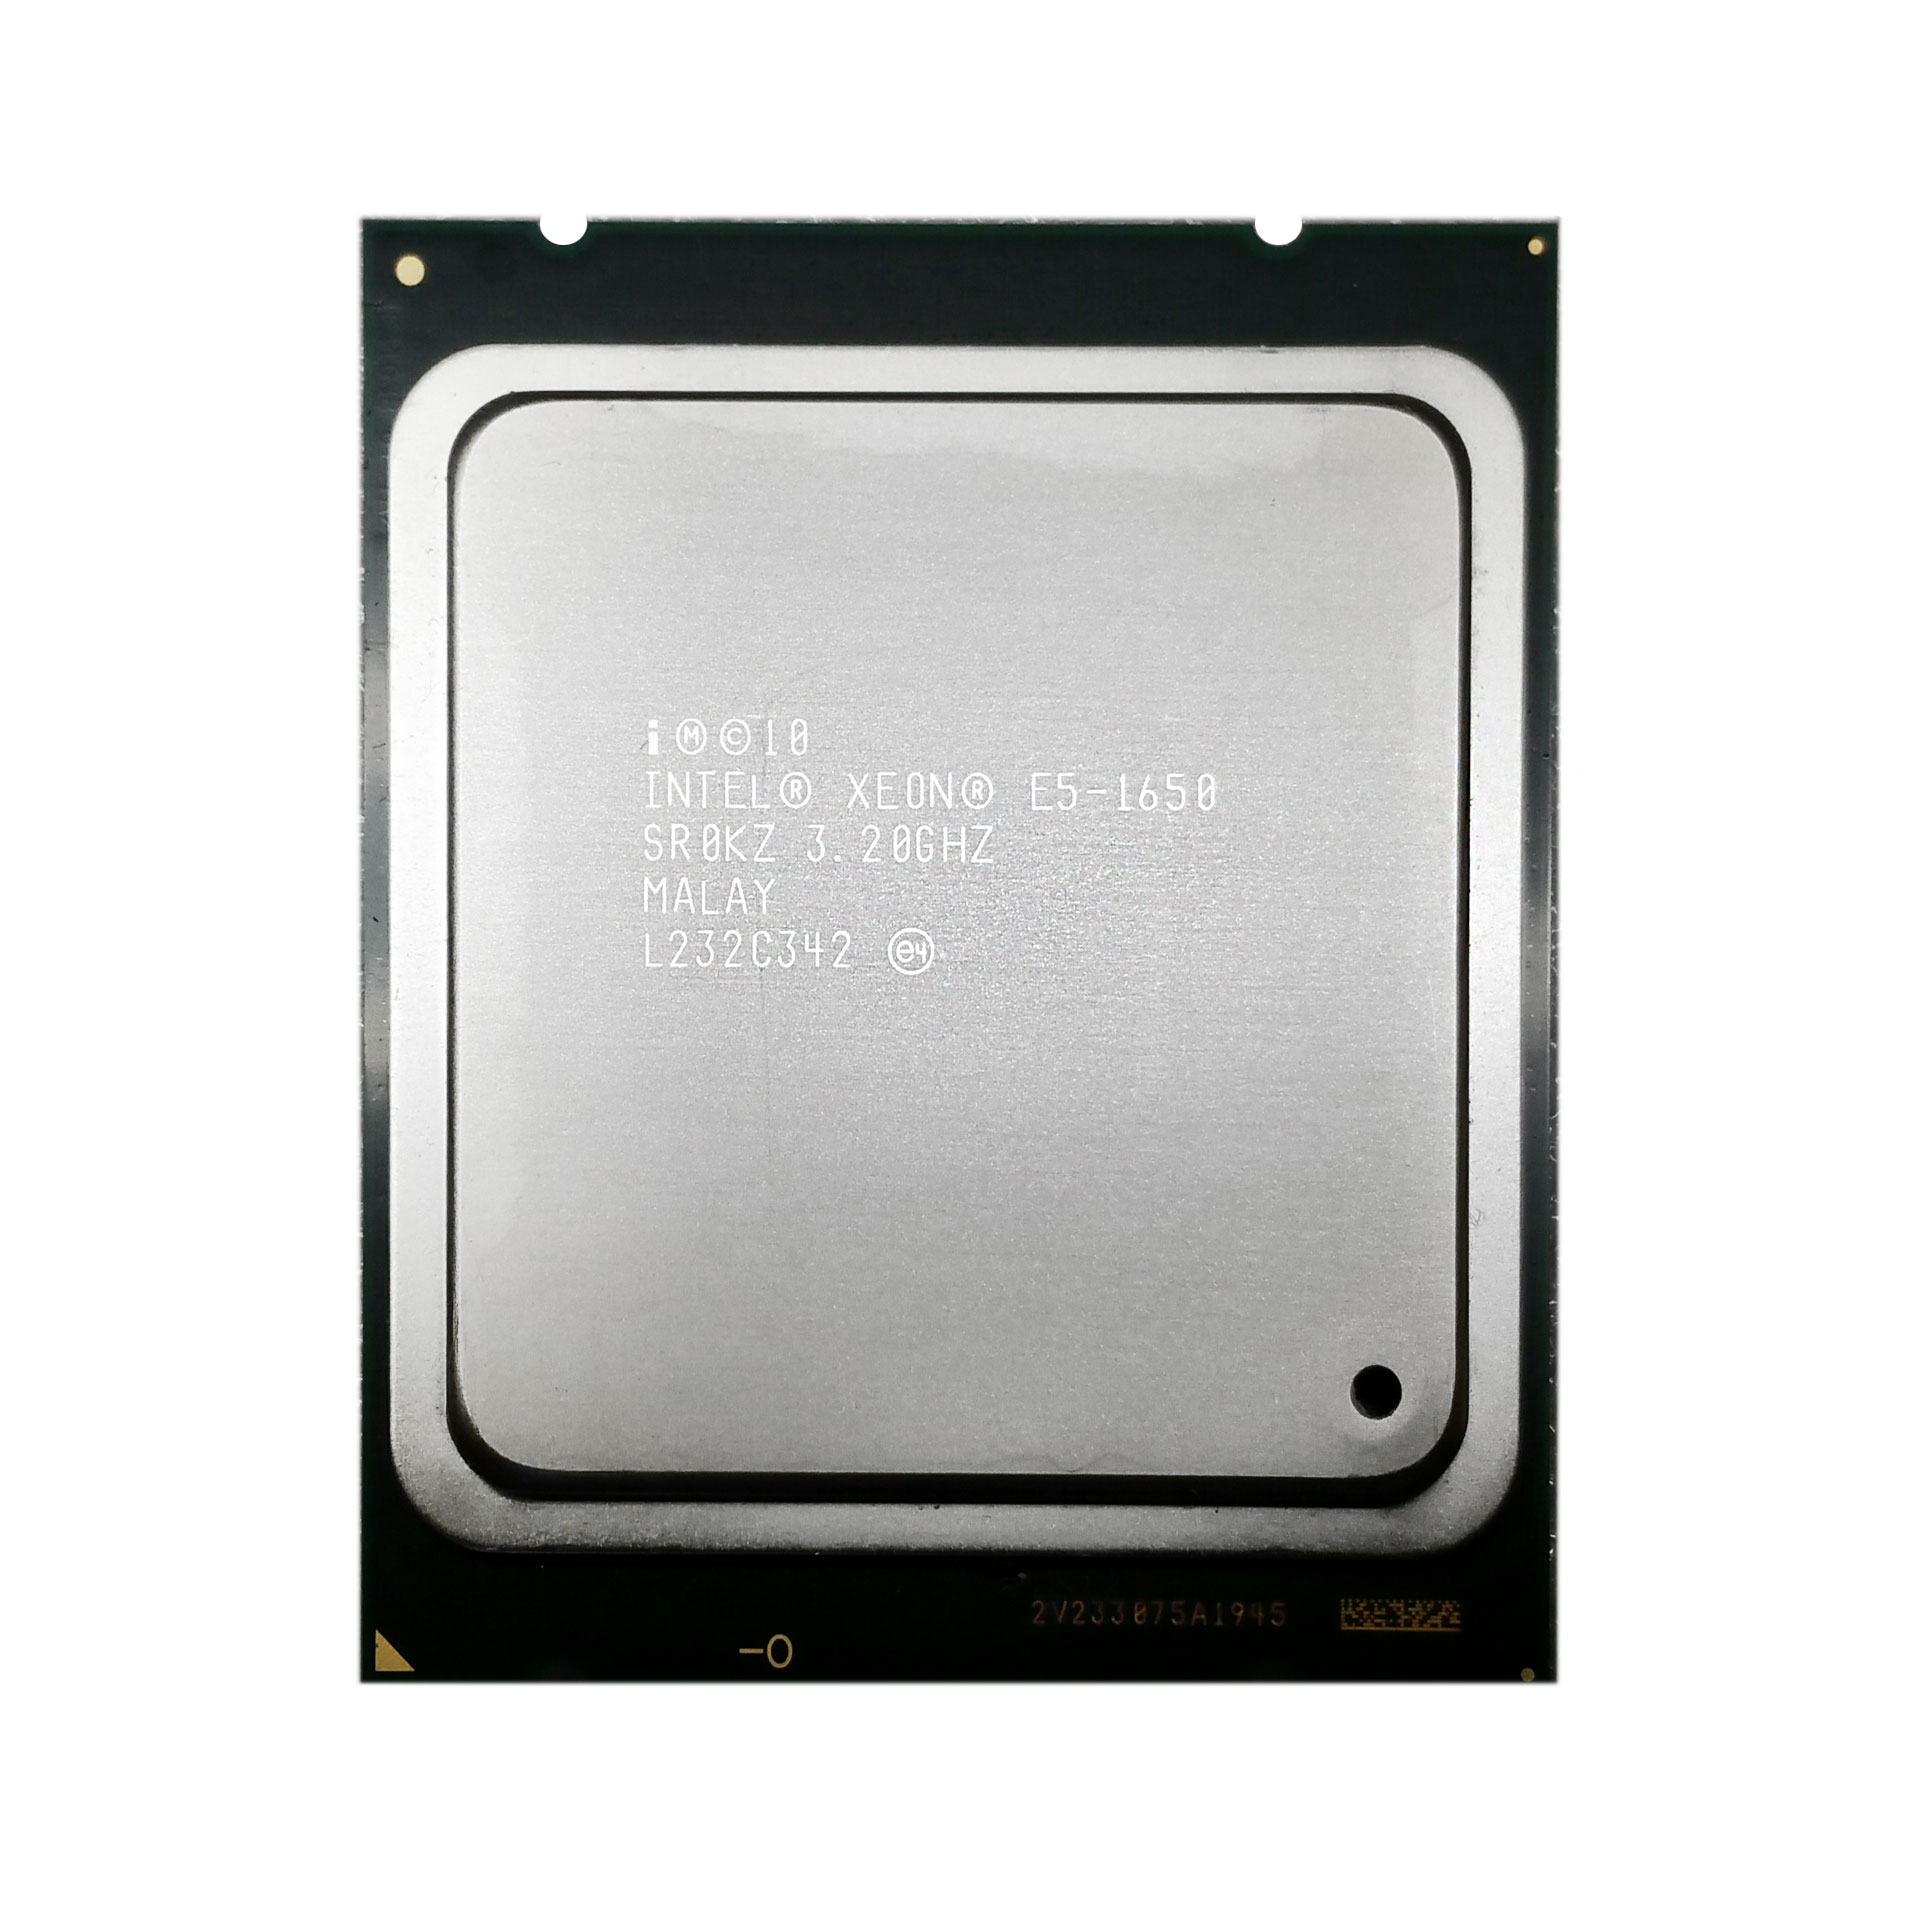 Intel Xeon E5-1650 3.2GHz 6-core 12MB LGA 2011 Processor SR0KZ